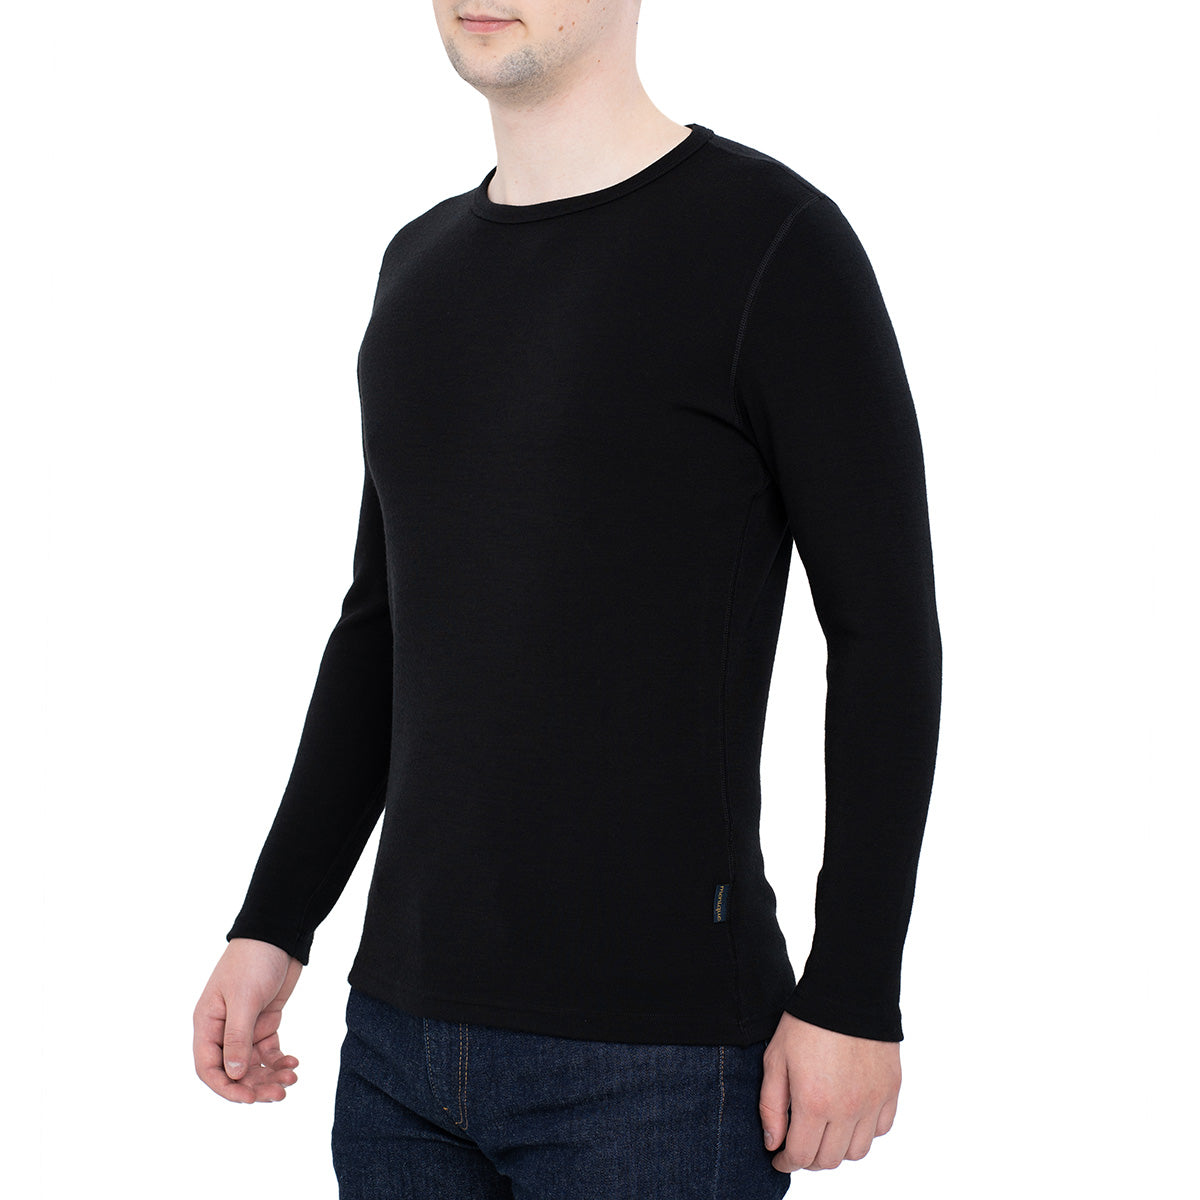 menique Men's Merino 250 Long Sleeve Crew Black Color